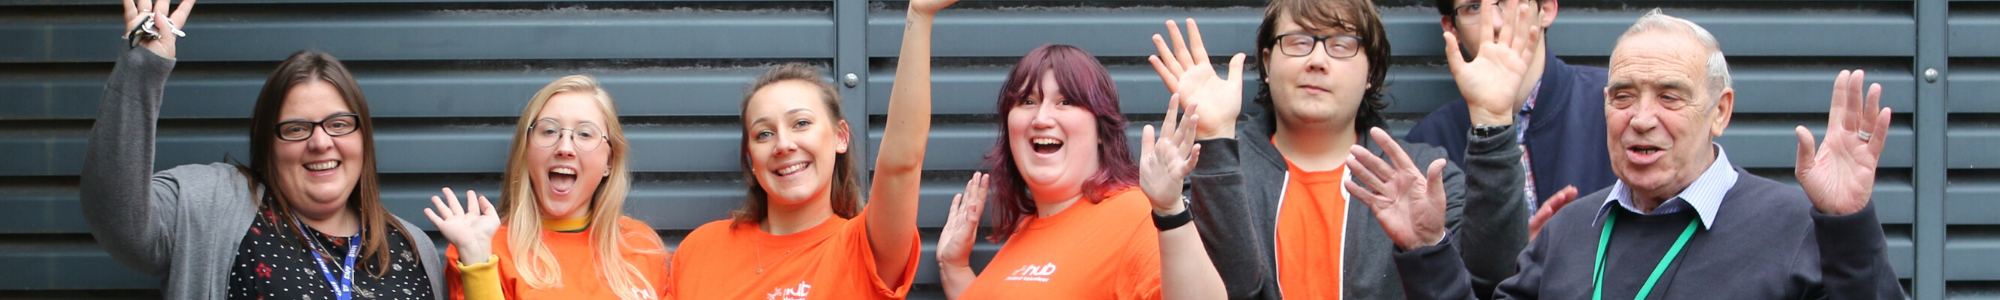 Seven people (four volunteers in orange tops and three members of staff) are smiling at the camera and lifting their hands in the air. They are in front of a background of horizontal grey bars.